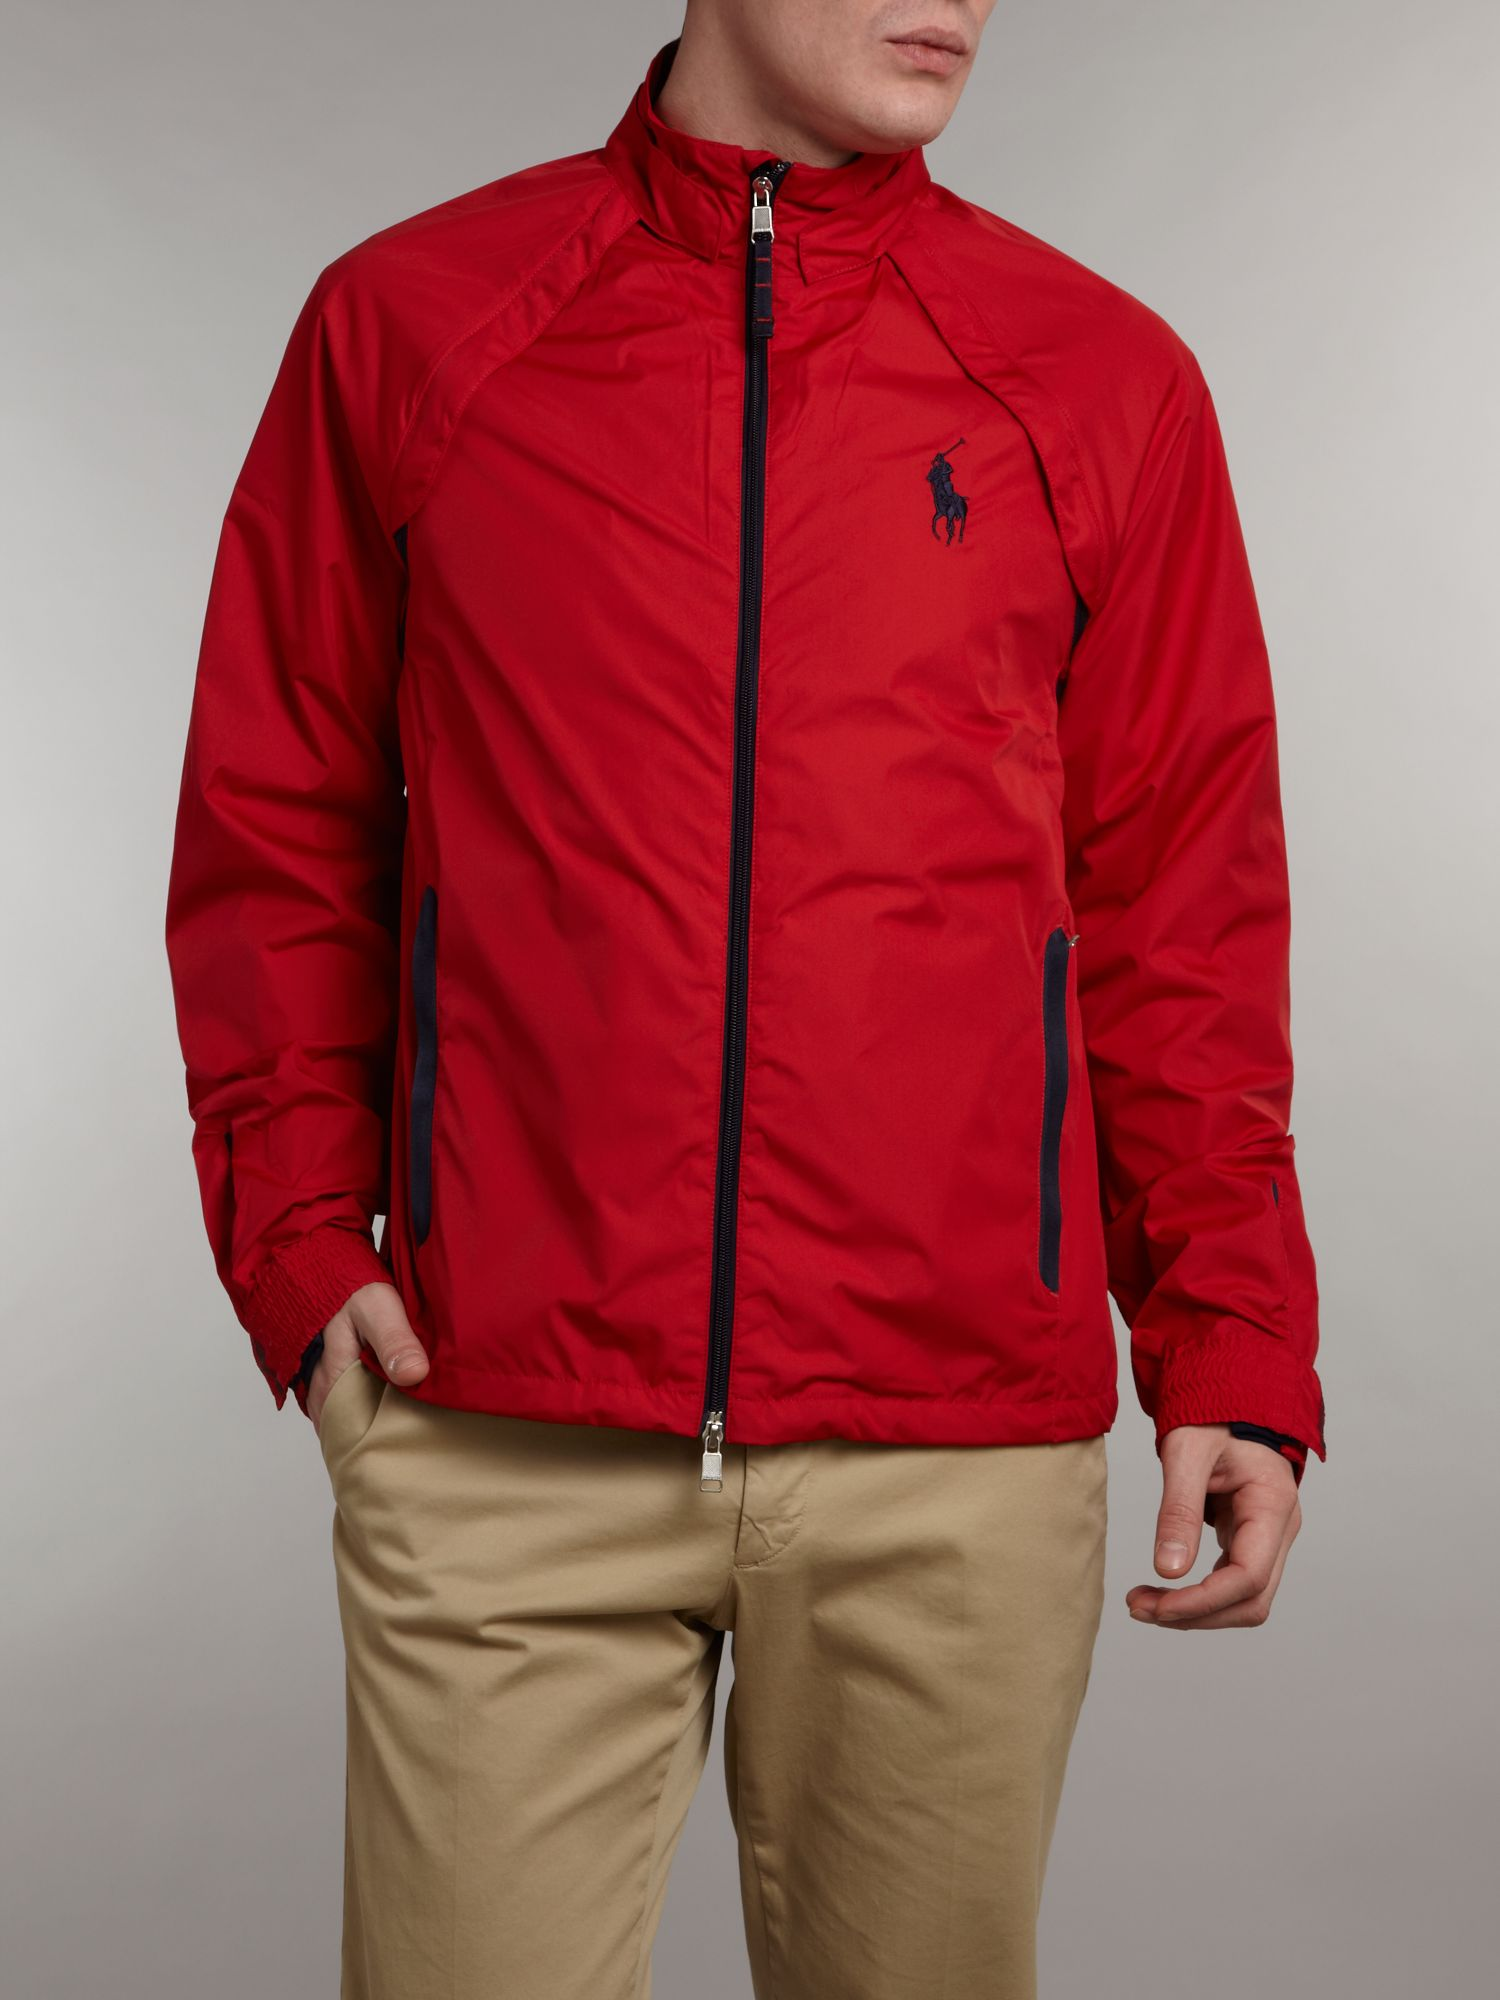 Ralph lauren golf Convertible Golf Windbreaker Jacket in Red for